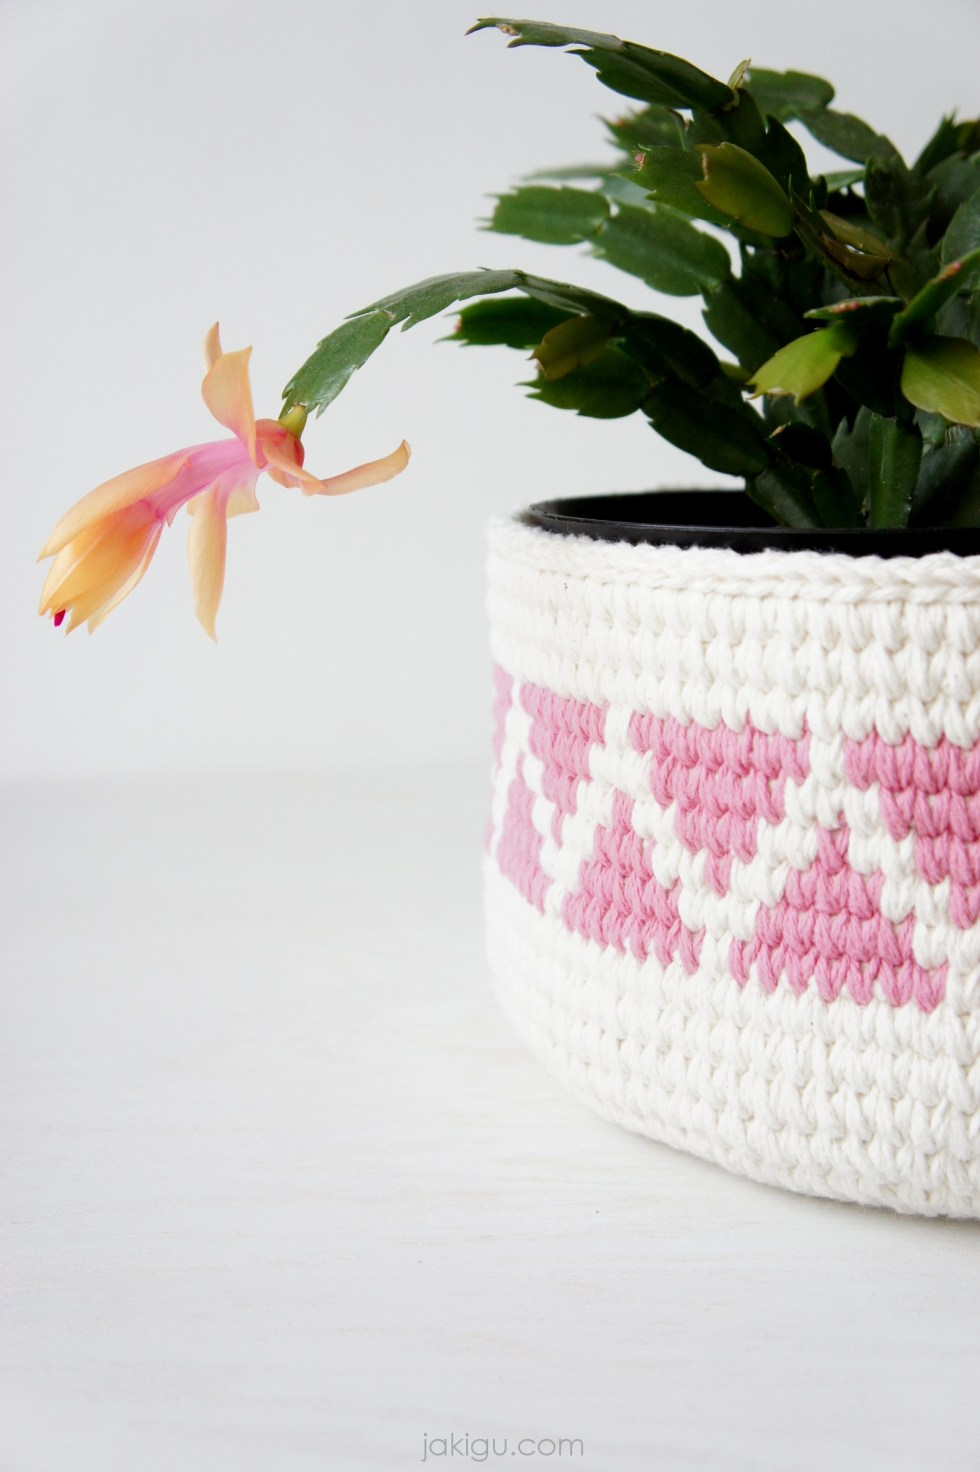 Crochet Basket or Planter with pink geometric detail | triangle chevron basket by jakigu.com